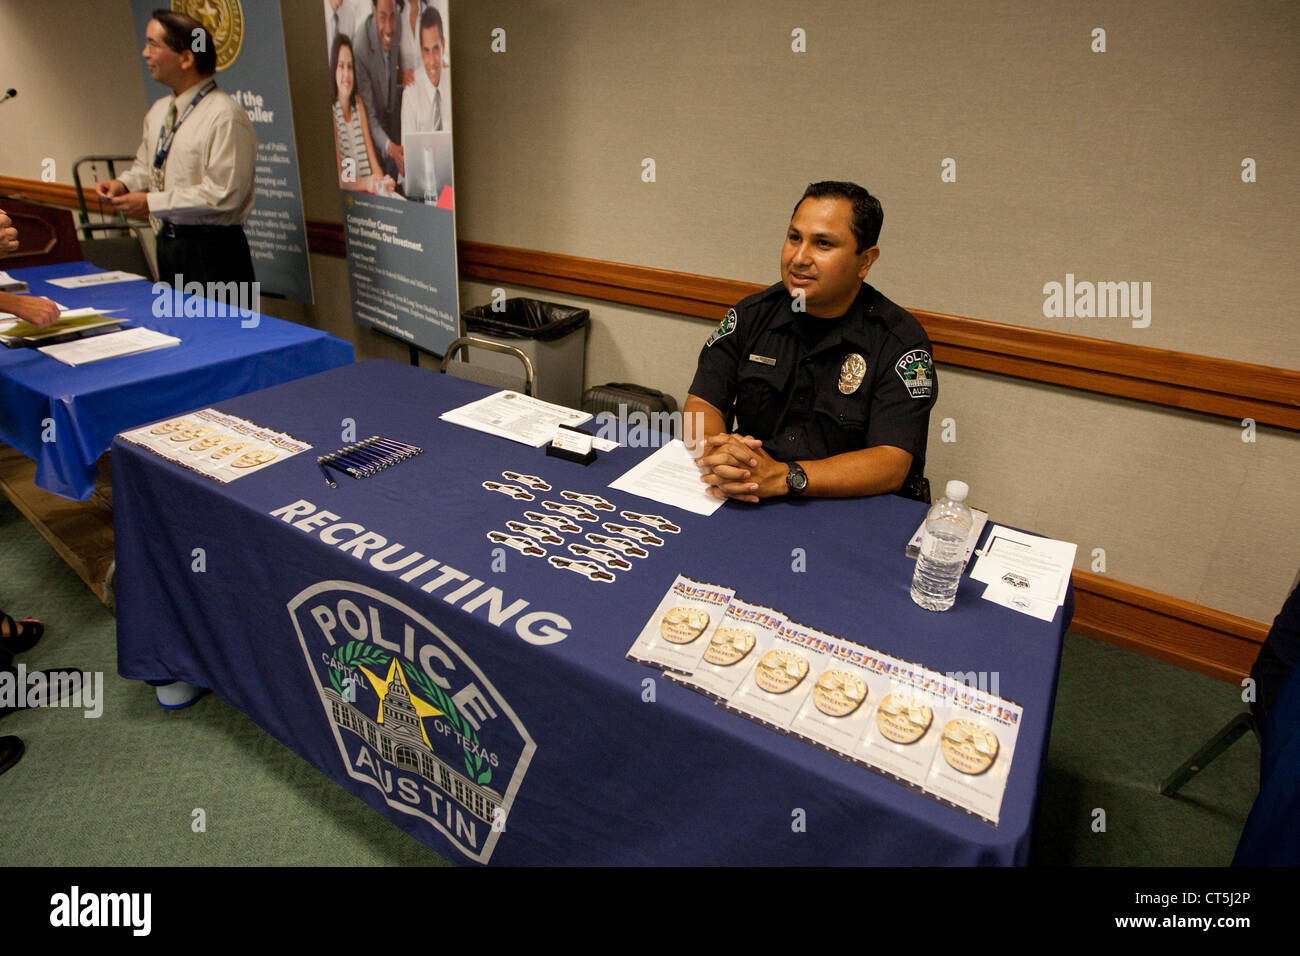 hispanic male police officer sits at recruiting table during a job